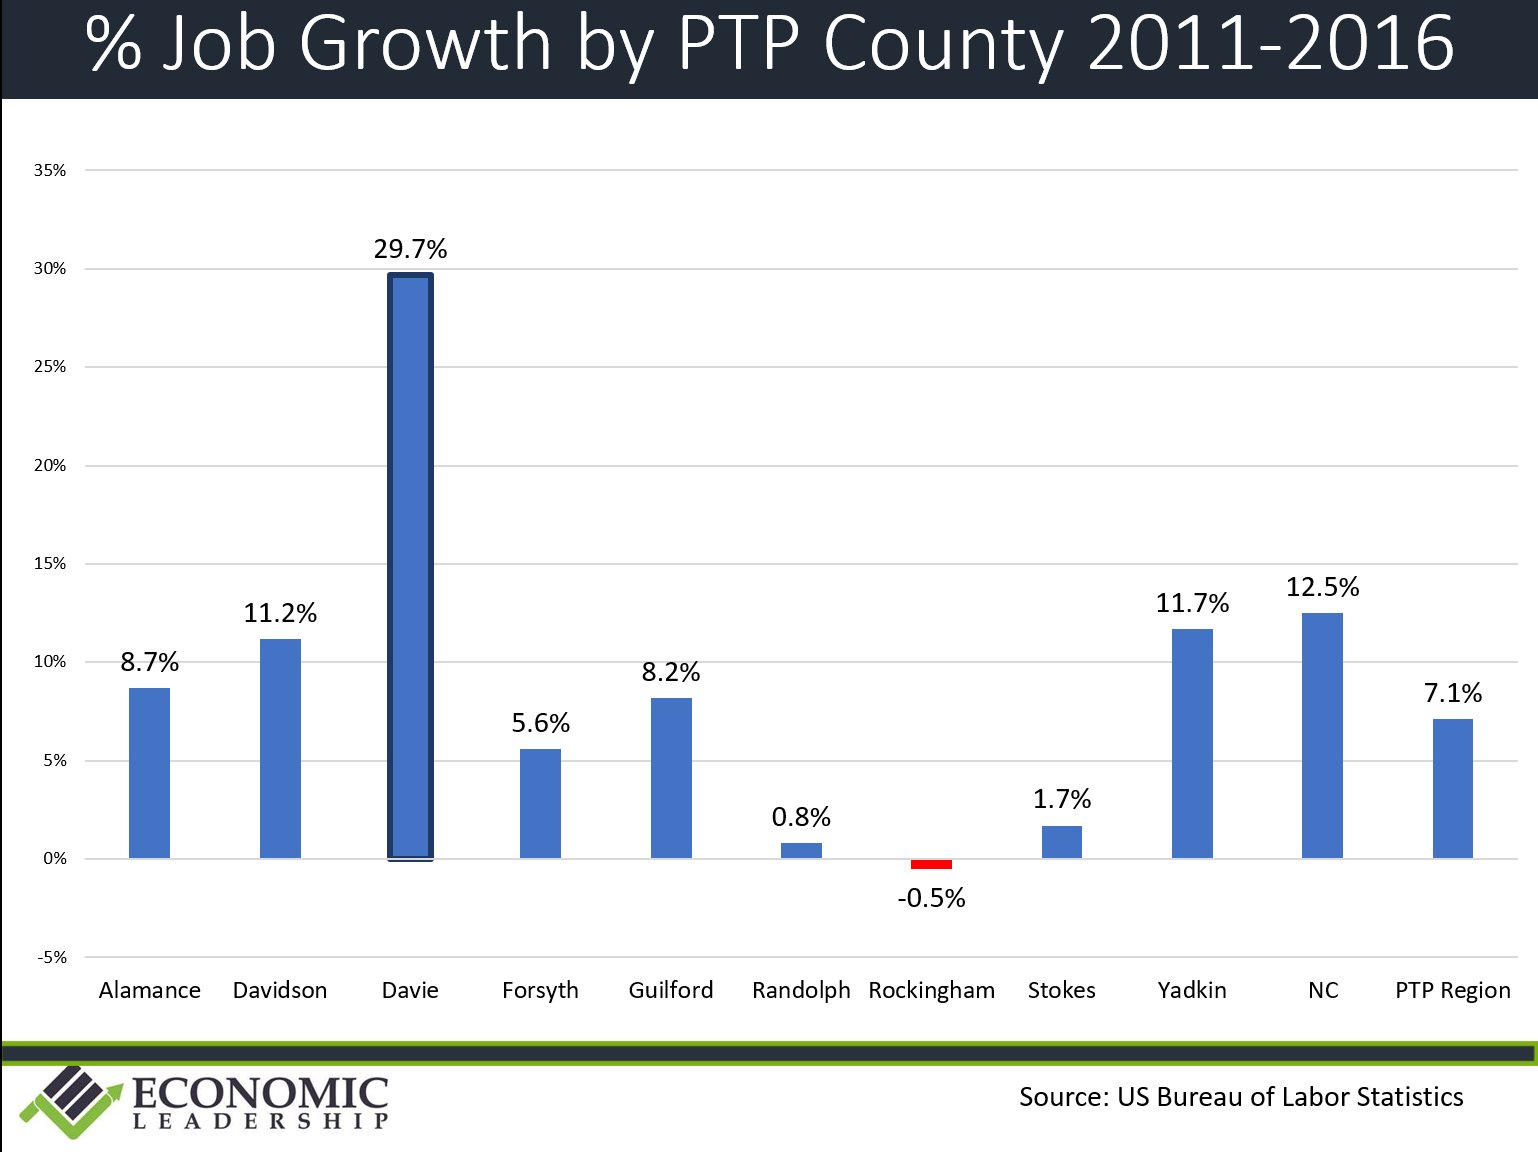 job-growth-by-county-2011-2016